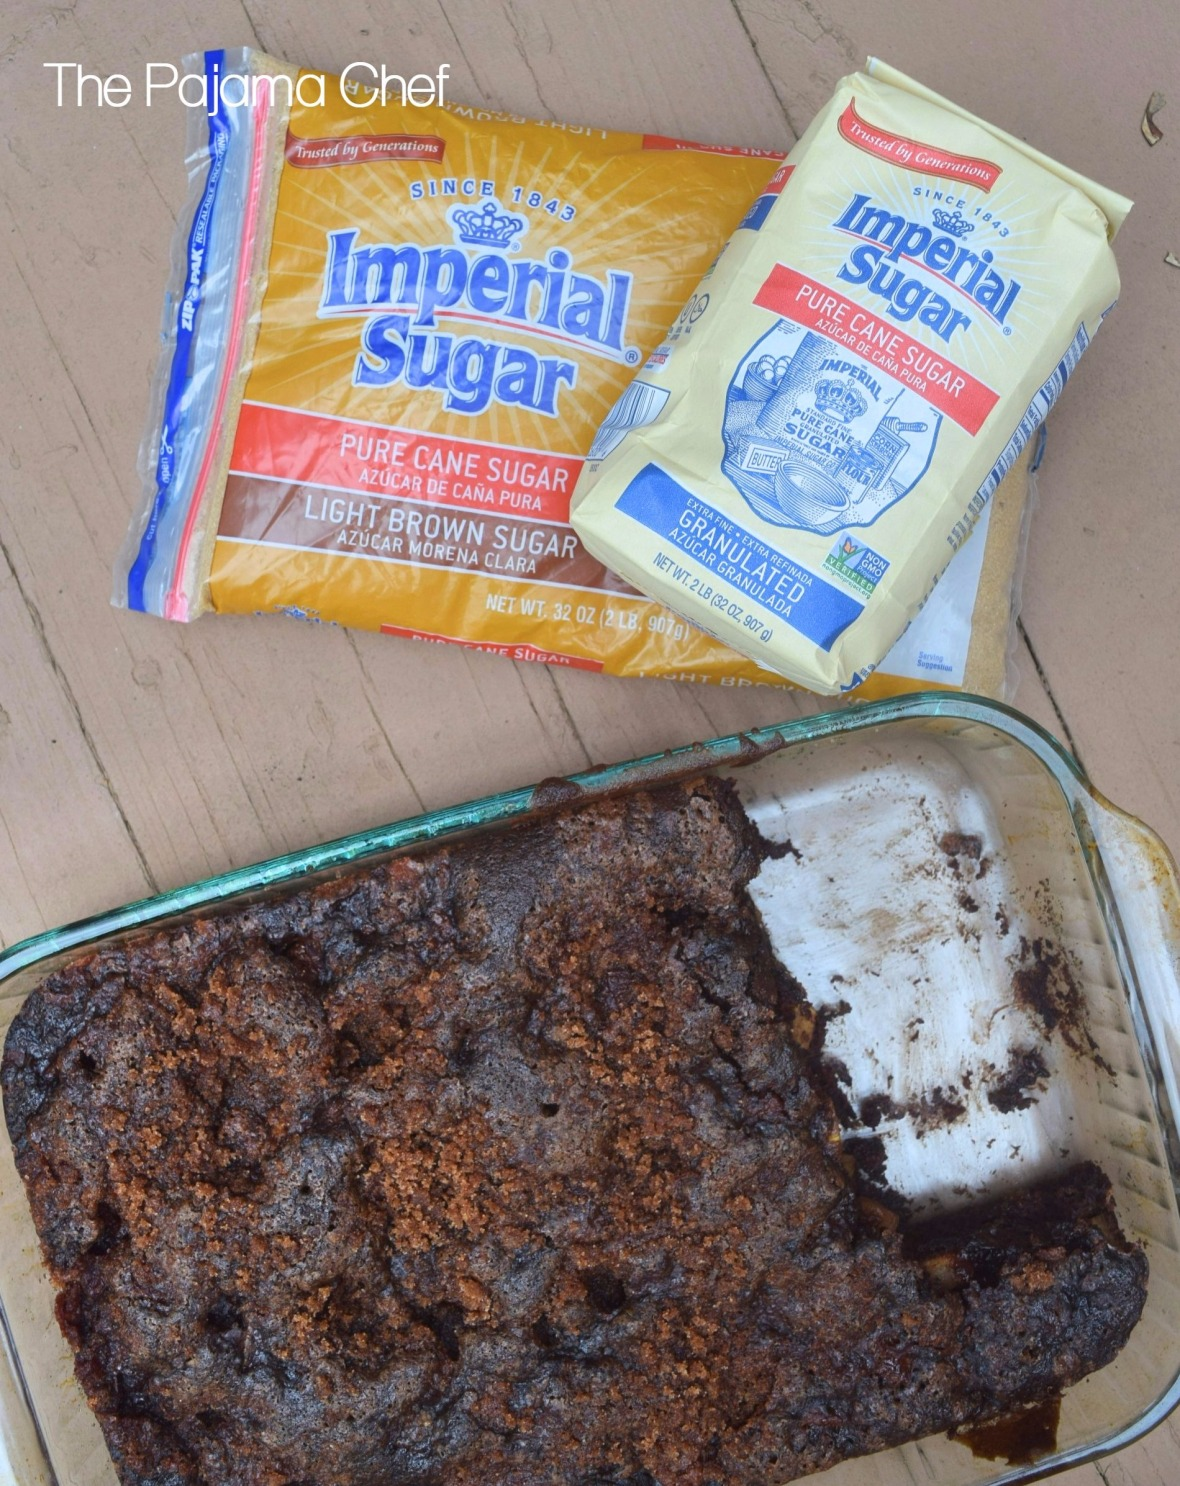 Chocolate Cinnamon Sugar Apple Cake - Sweet chocolate cake studded with fresh apples and topped with cinnamon sugar... this fall favorite is sure to please!#Choctoberfest #ImperialSugar #sponsored #ad